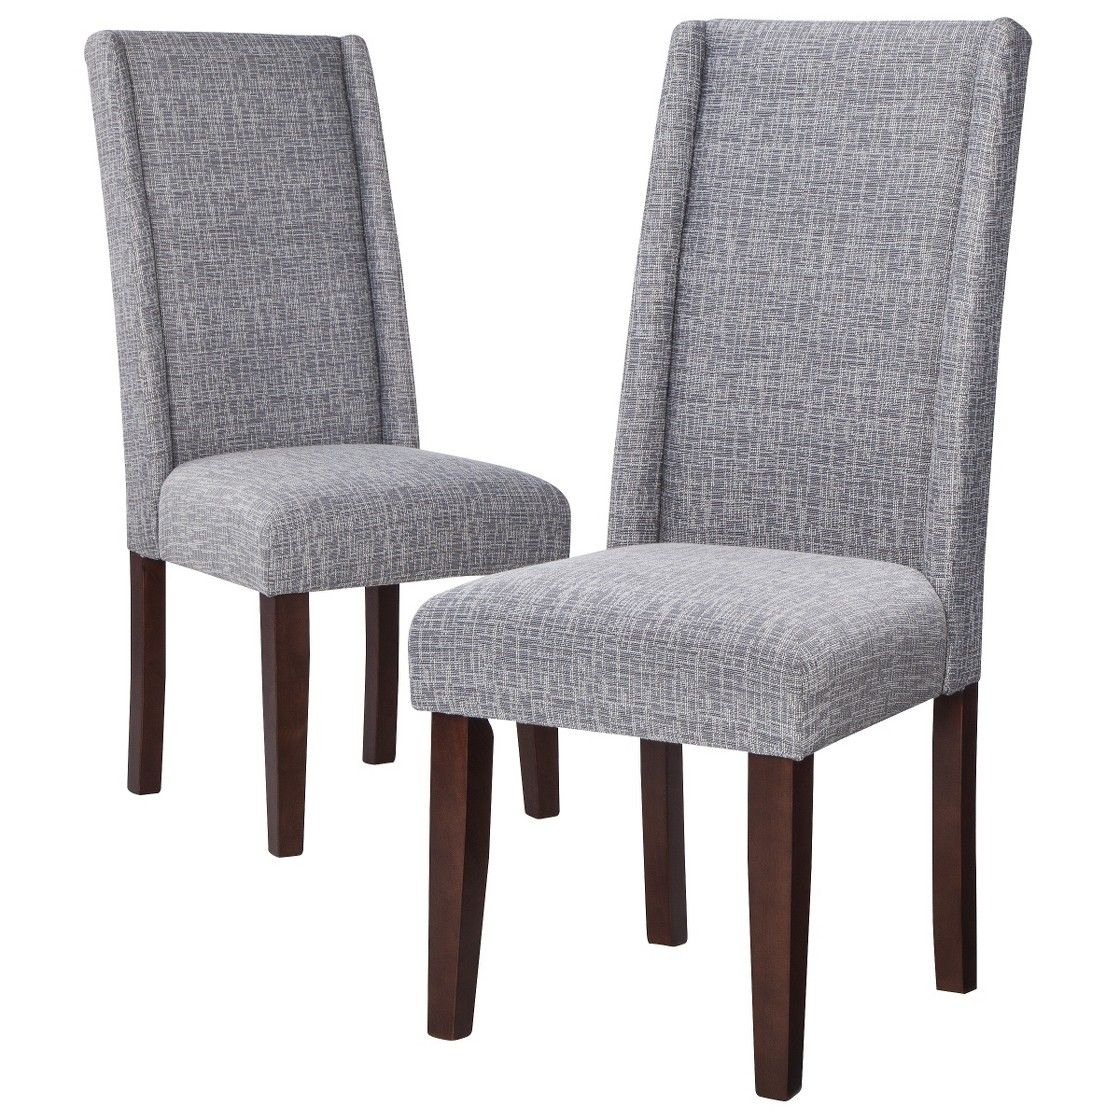 Charlie Modern Wingback Dining Chair Textured Grey Set Of 2